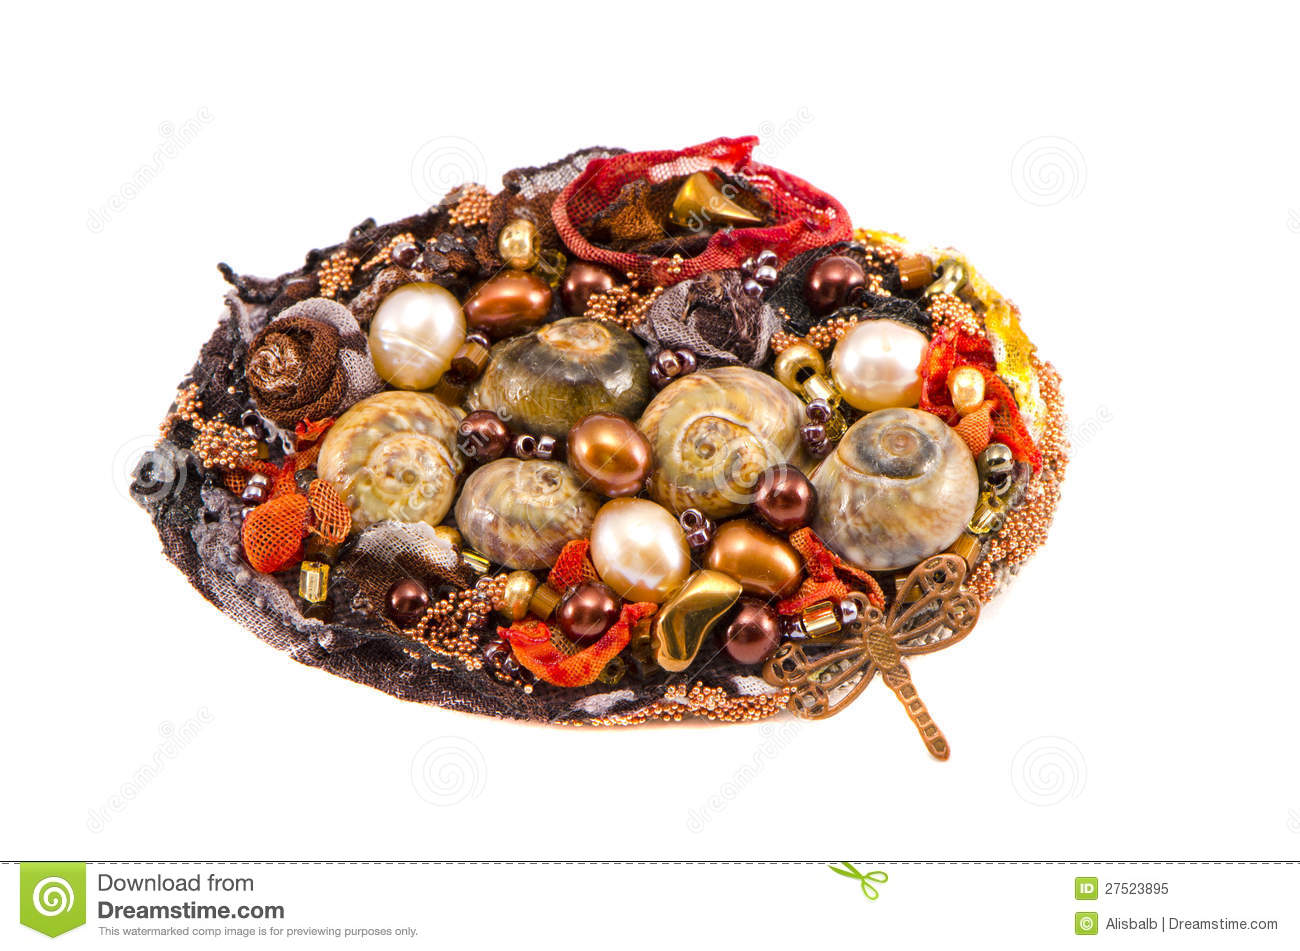 handmade brooch with various stones and shells